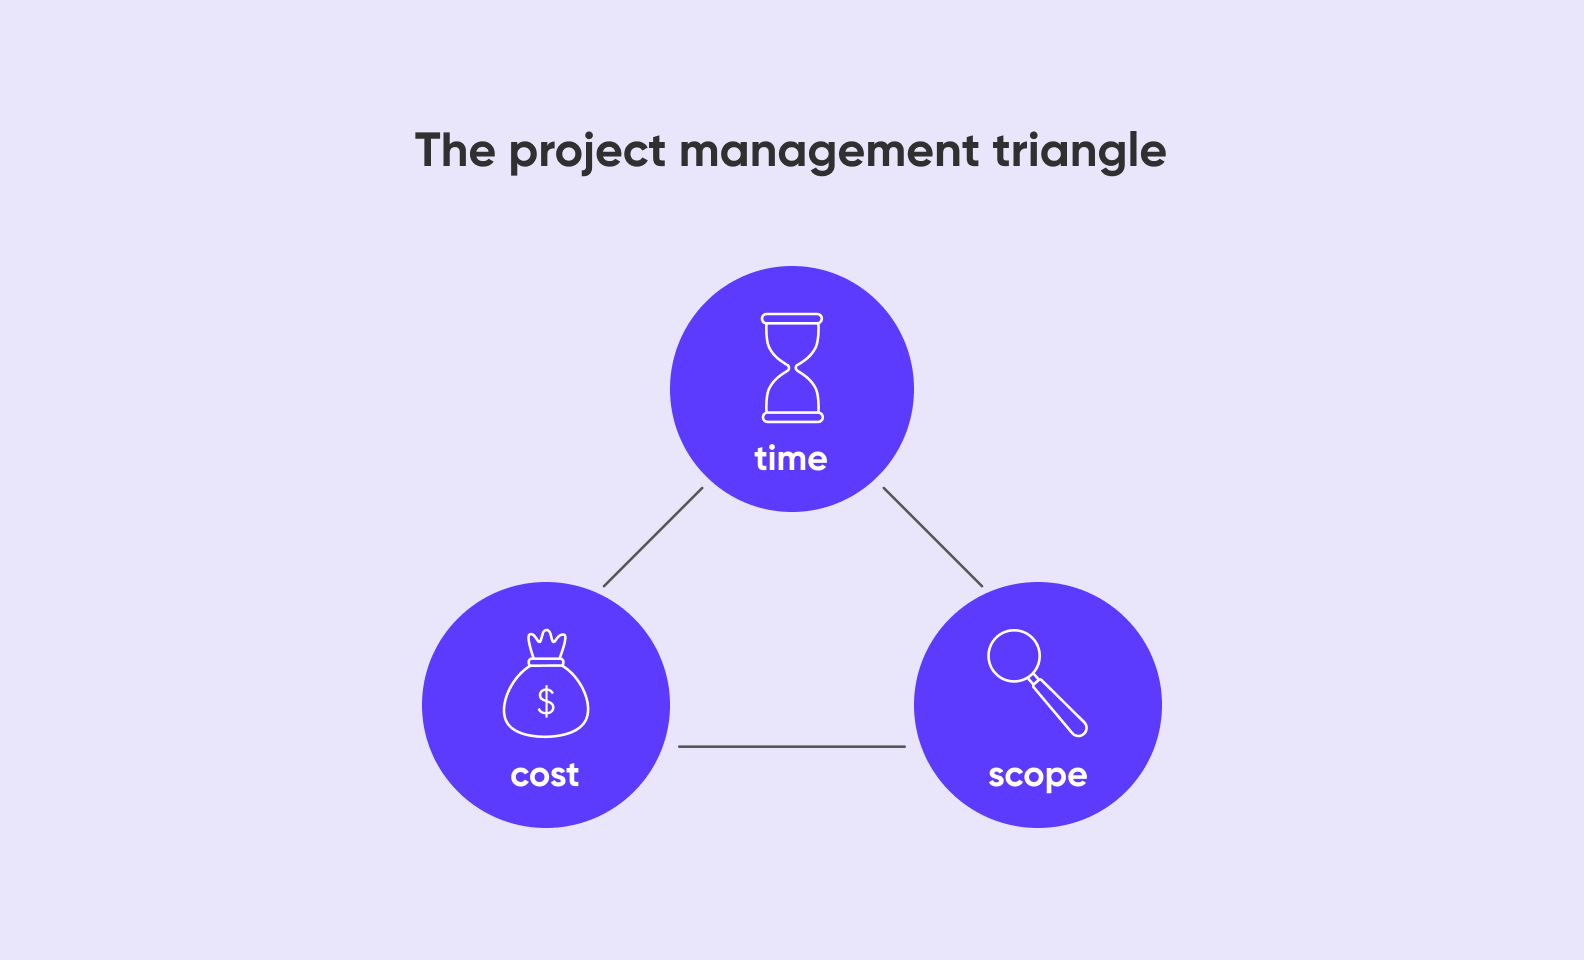 The Project Management Triangle. Project management consulting firms